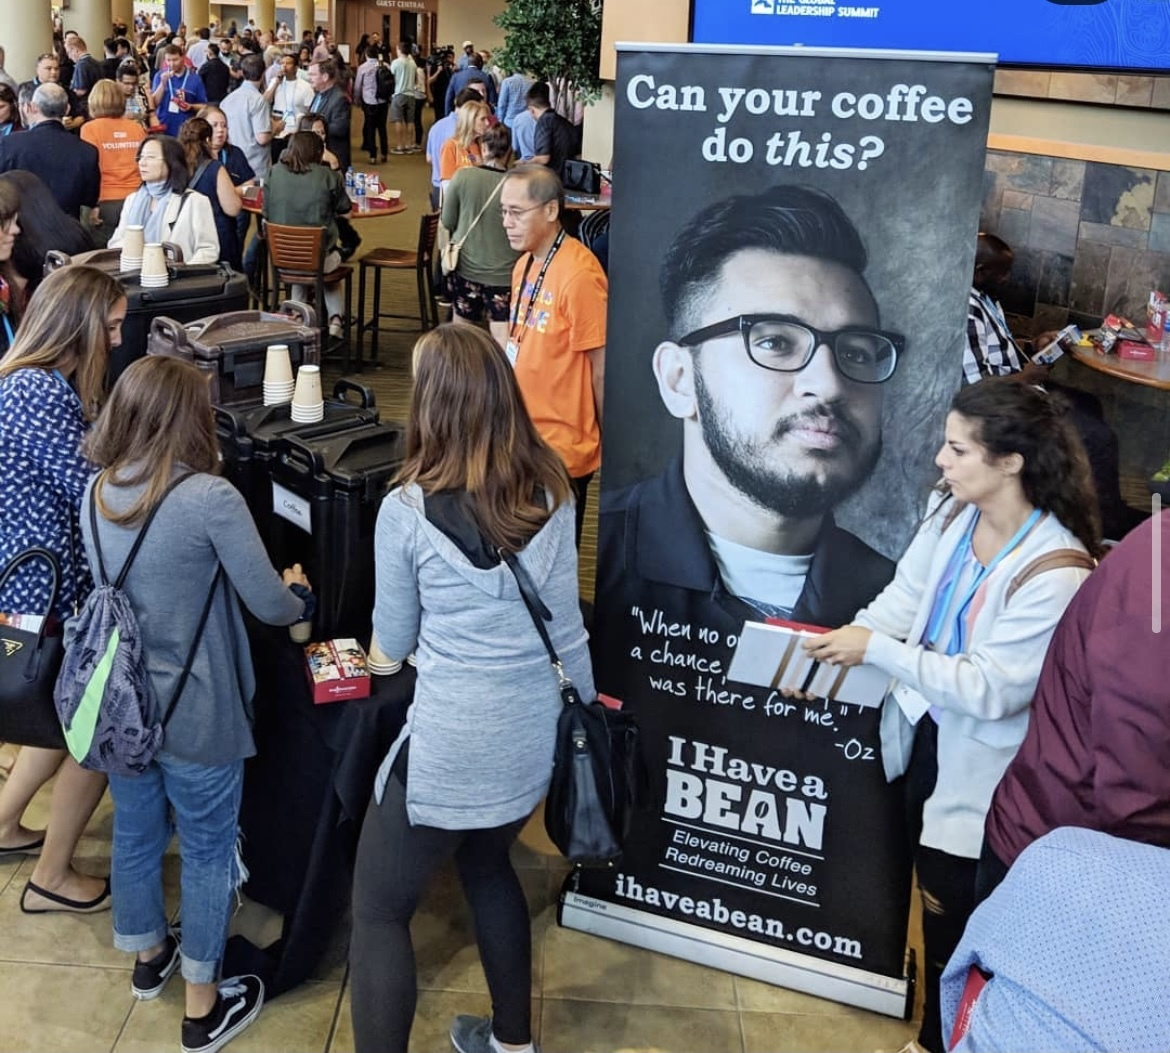 From Beans To Dreams: Meet the Business Brewing Second Chances